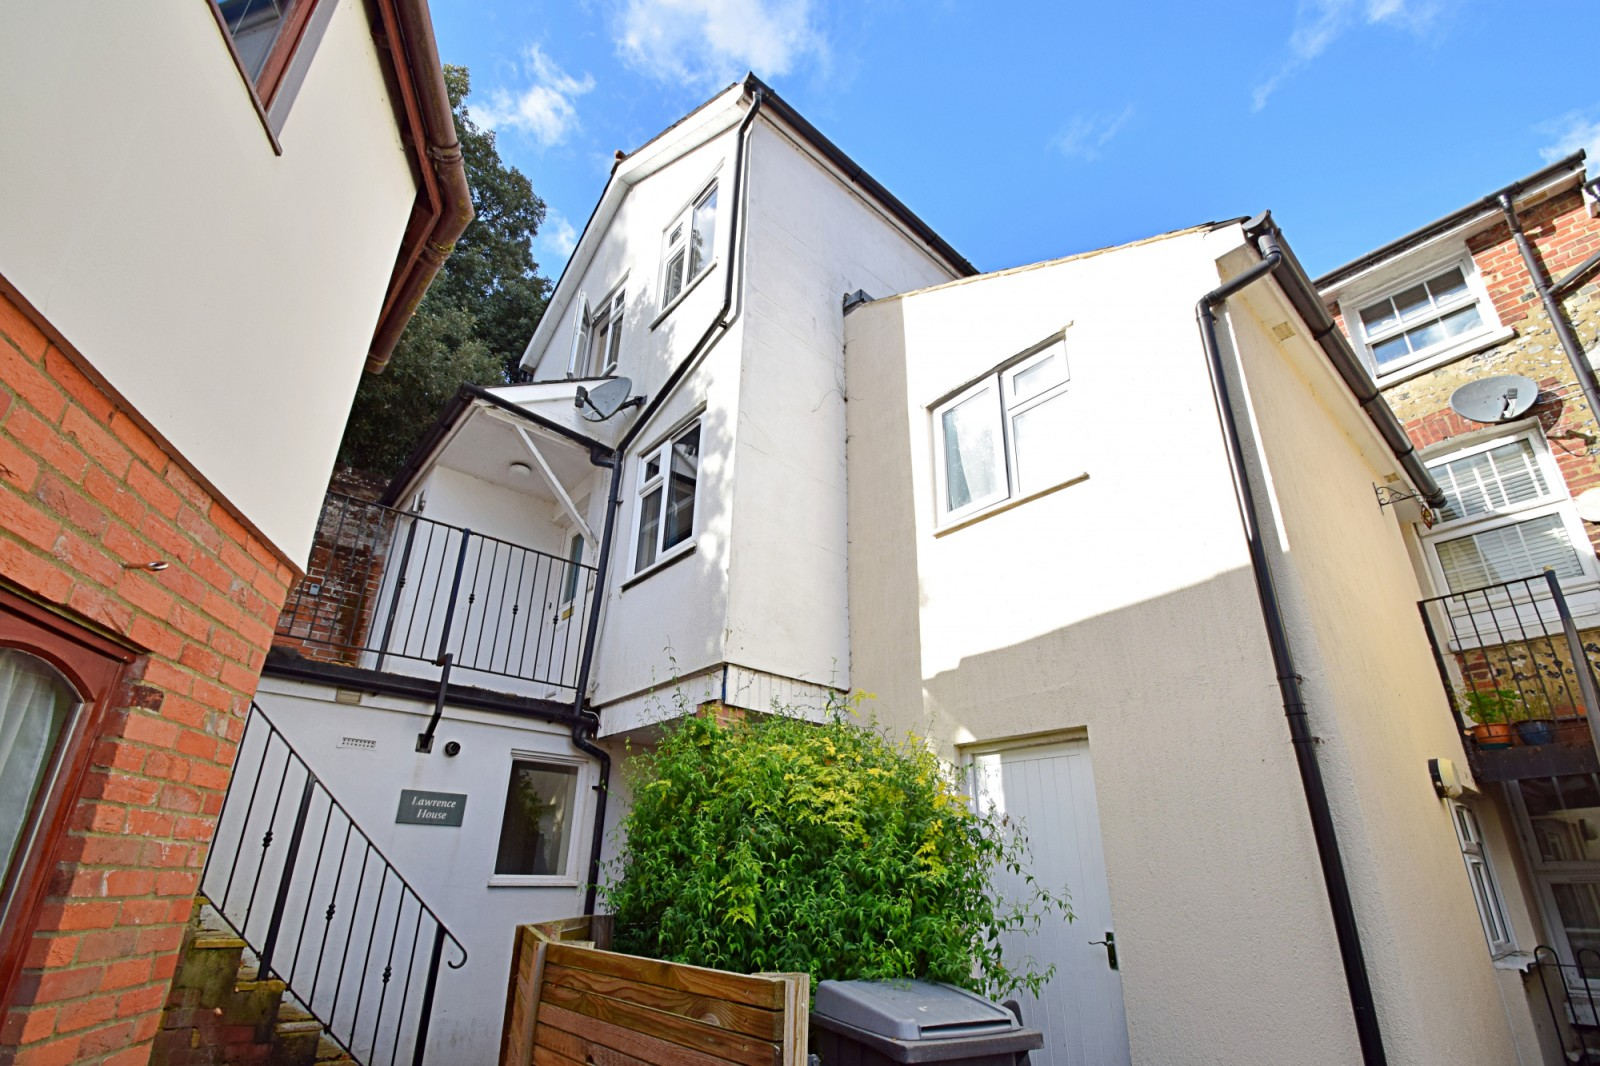 Flat 2 Lawrence House, The Walk, Crowder Terrace, Winchester SO22 4PD